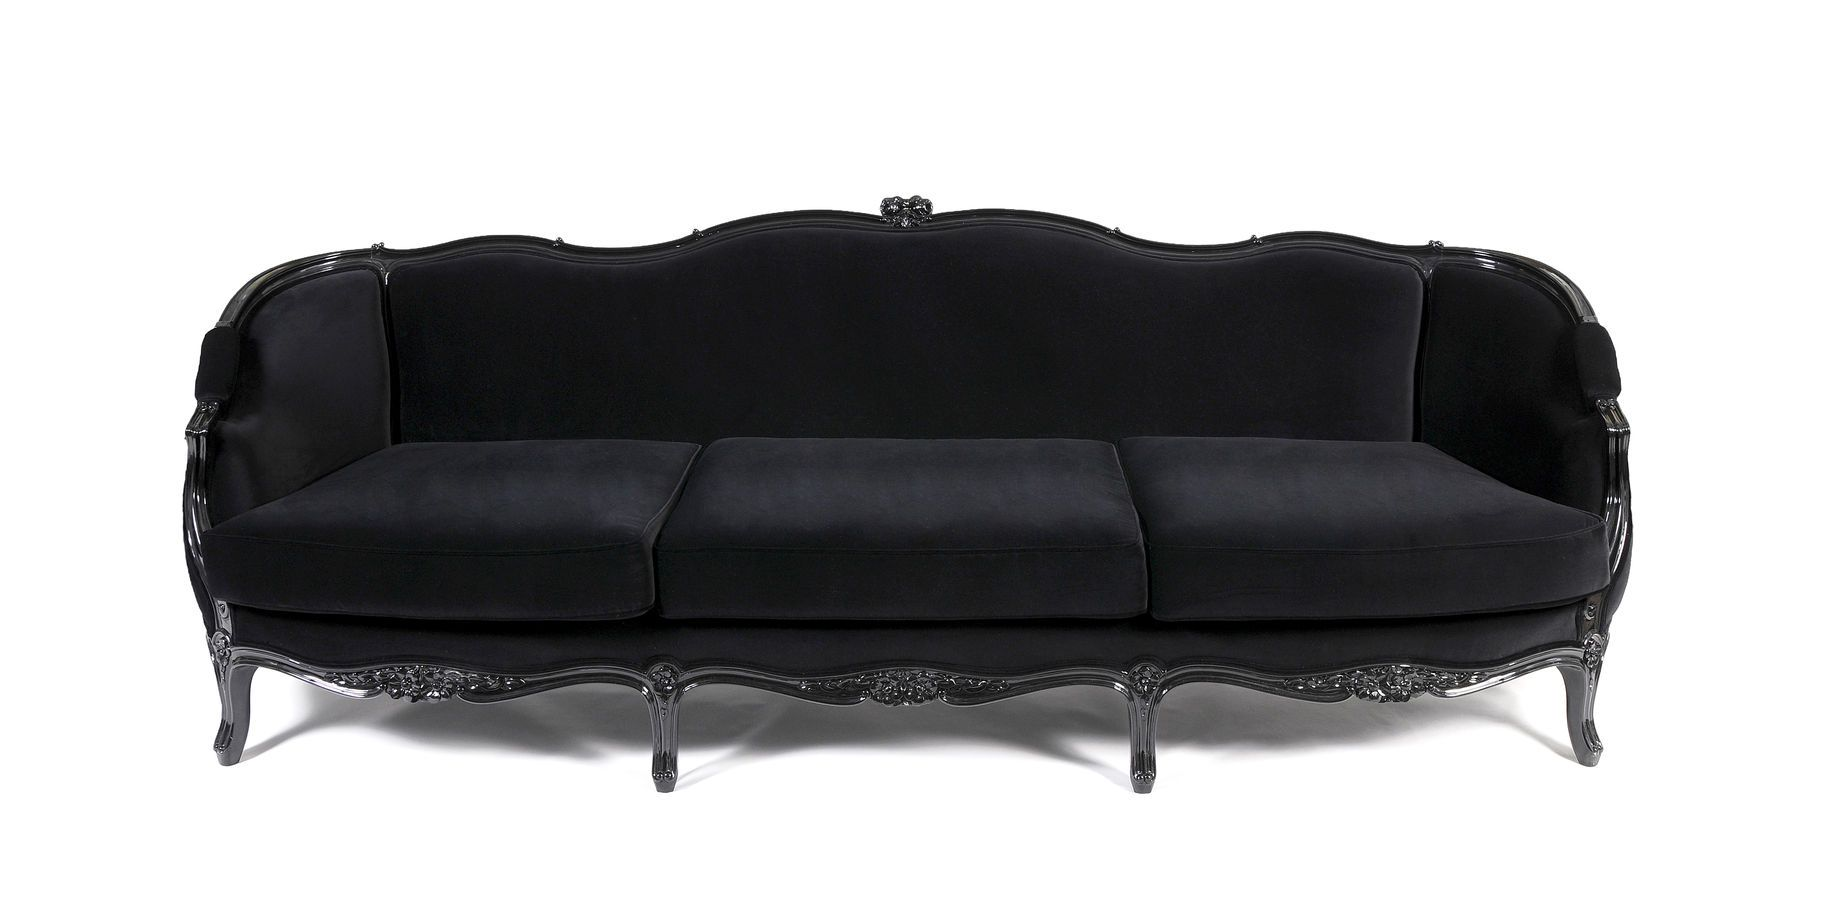 Vintage Black Sofas Design Beautiful Carved Sleek Wood Frame